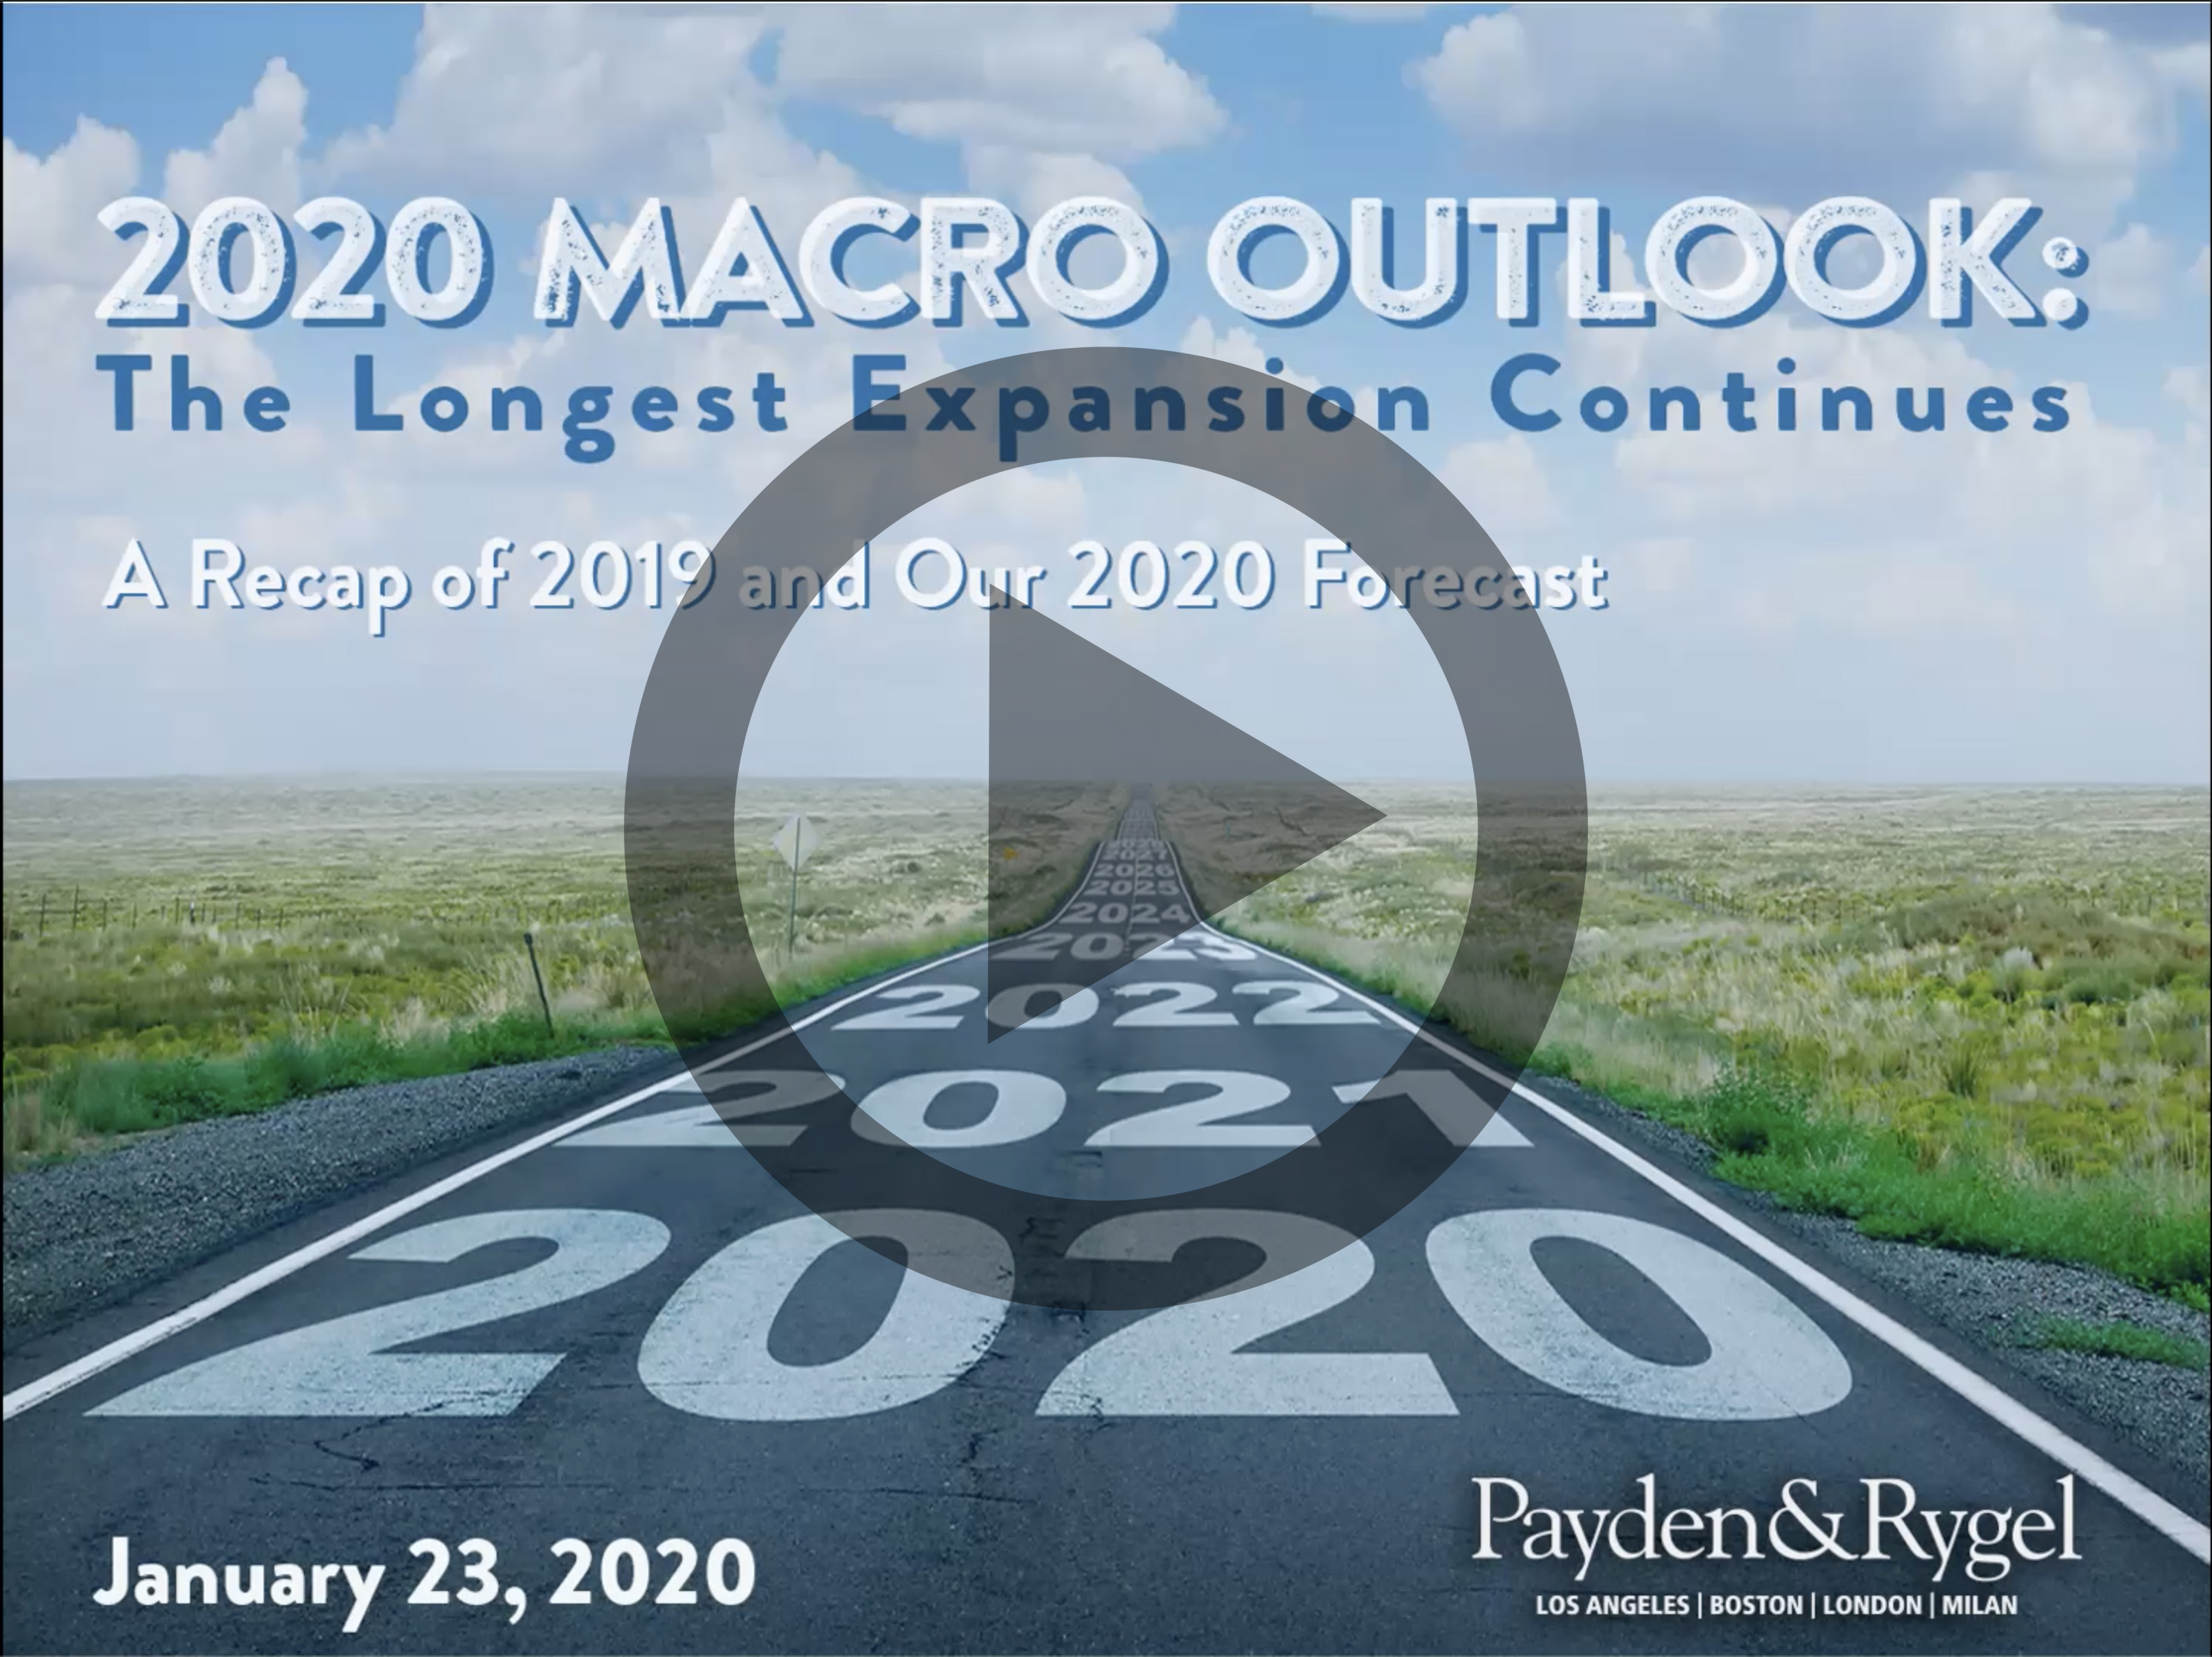 2020 Macro Outlook: The Longest Expansion Continues